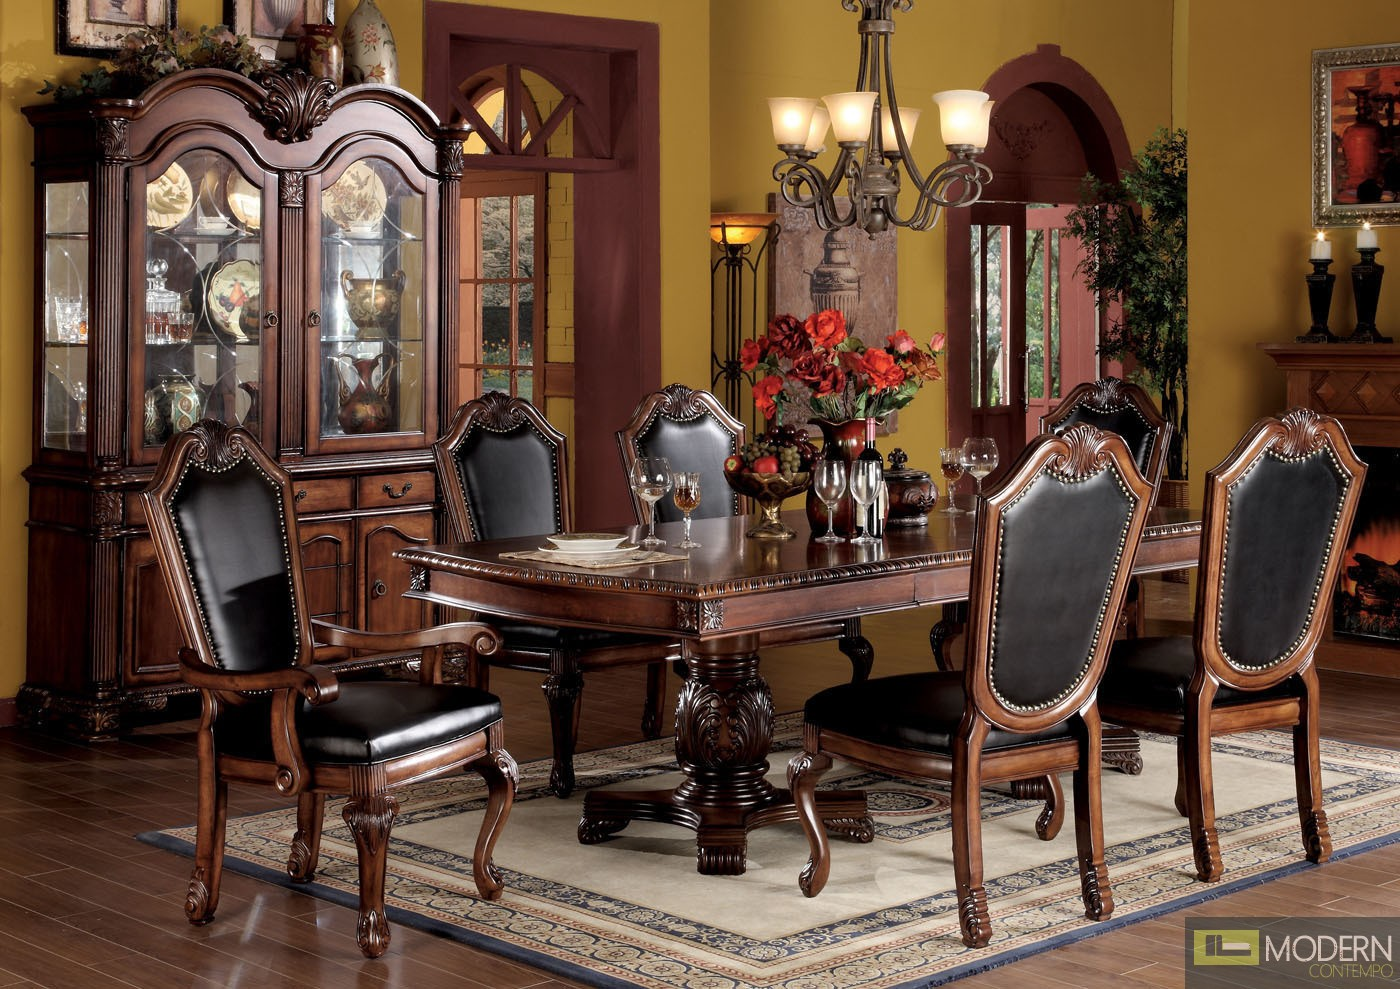 7 pc high end cherry finish dining room set table and chairs zac04075. Black Bedroom Furniture Sets. Home Design Ideas